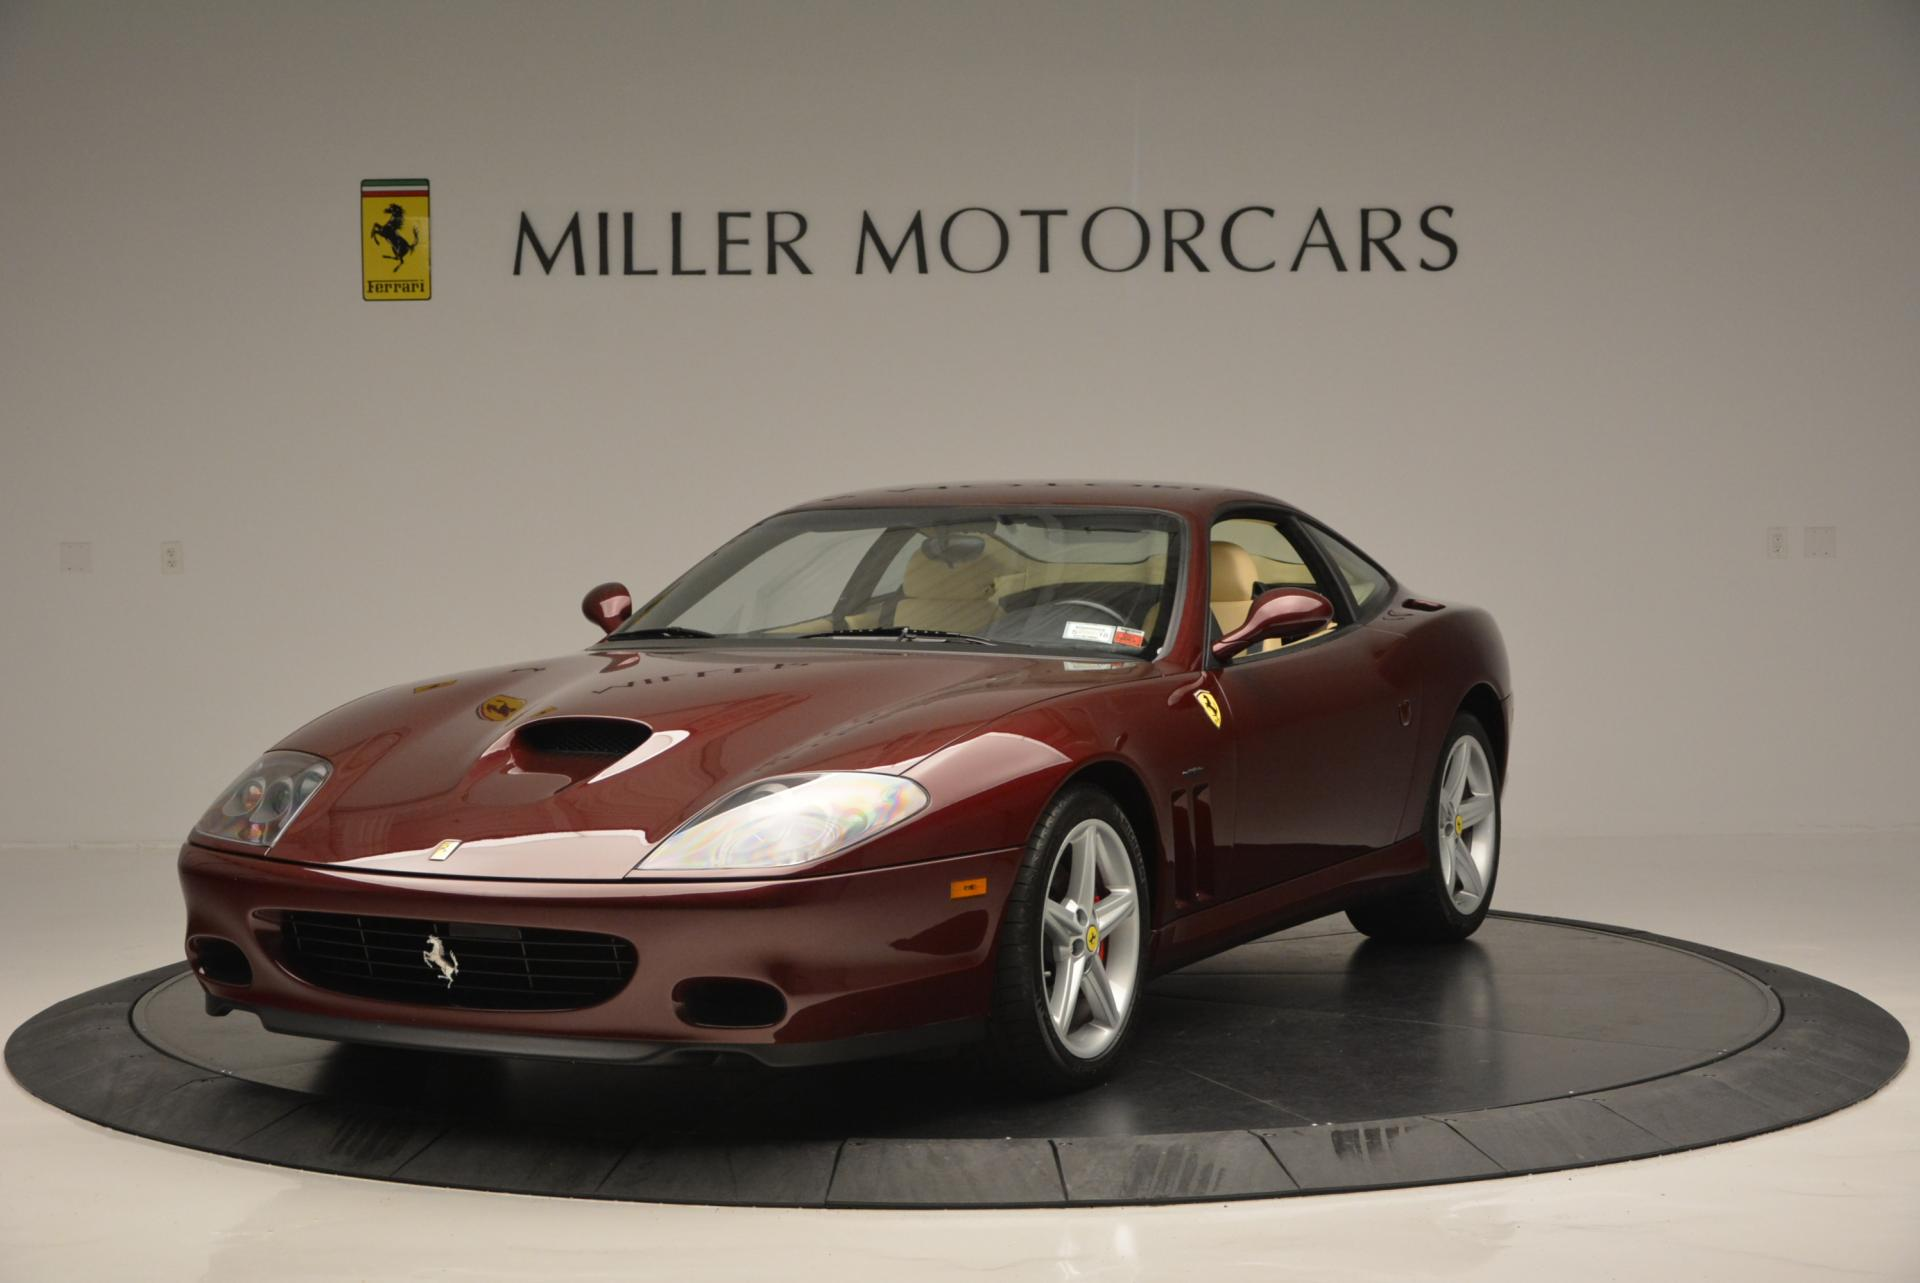 Used 2003 Ferrari 575M Maranello 6-Speed Manual for sale Sold at Bentley Greenwich in Greenwich CT 06830 1